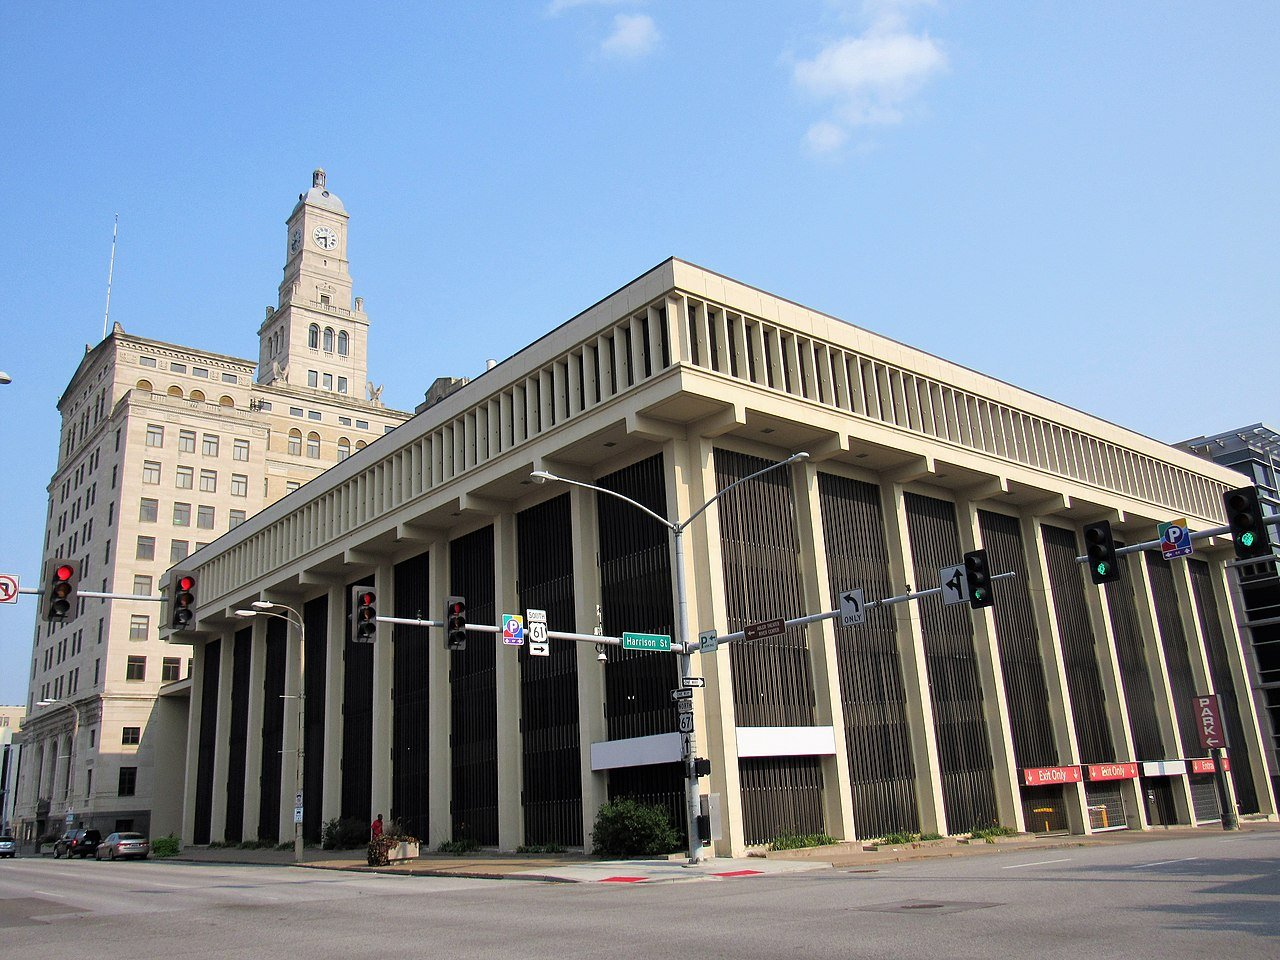 The parking structure was built in 1971 and was added to the bank building's National Register listing (as a boundary increase) in 2016.